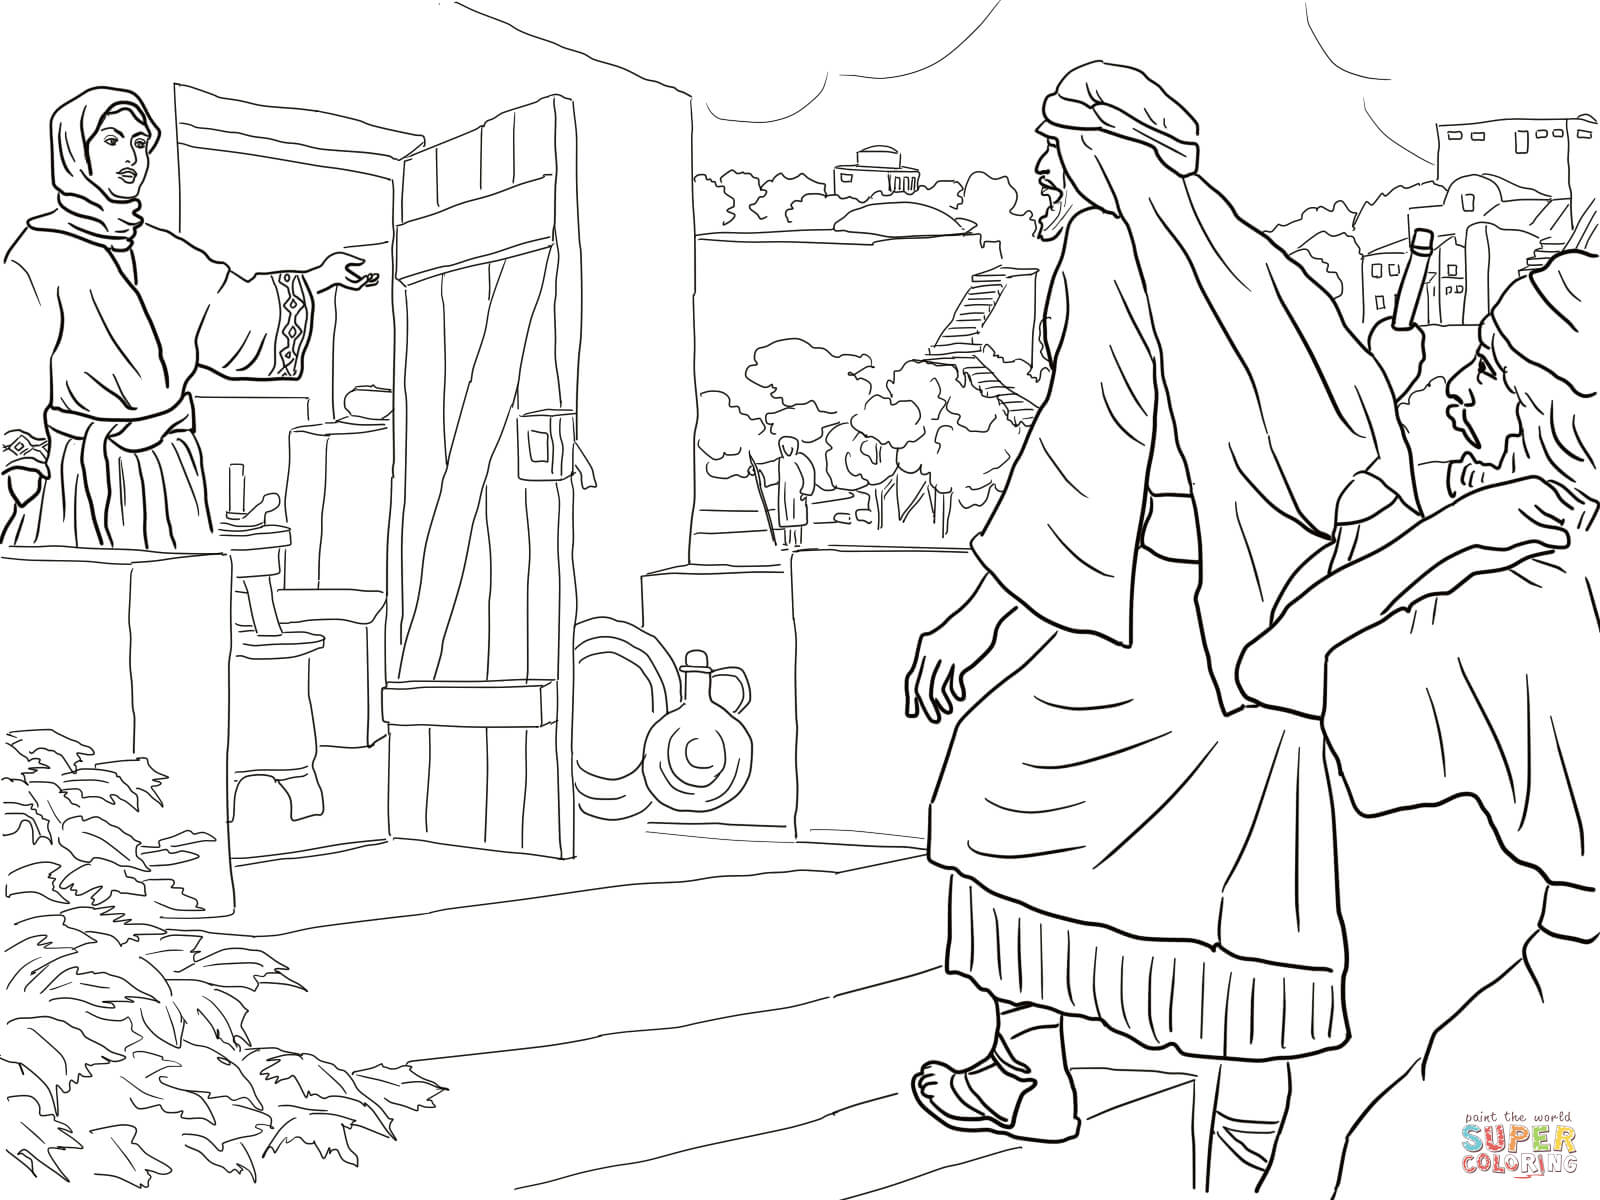 New Room Built For Elisha Coloring Page